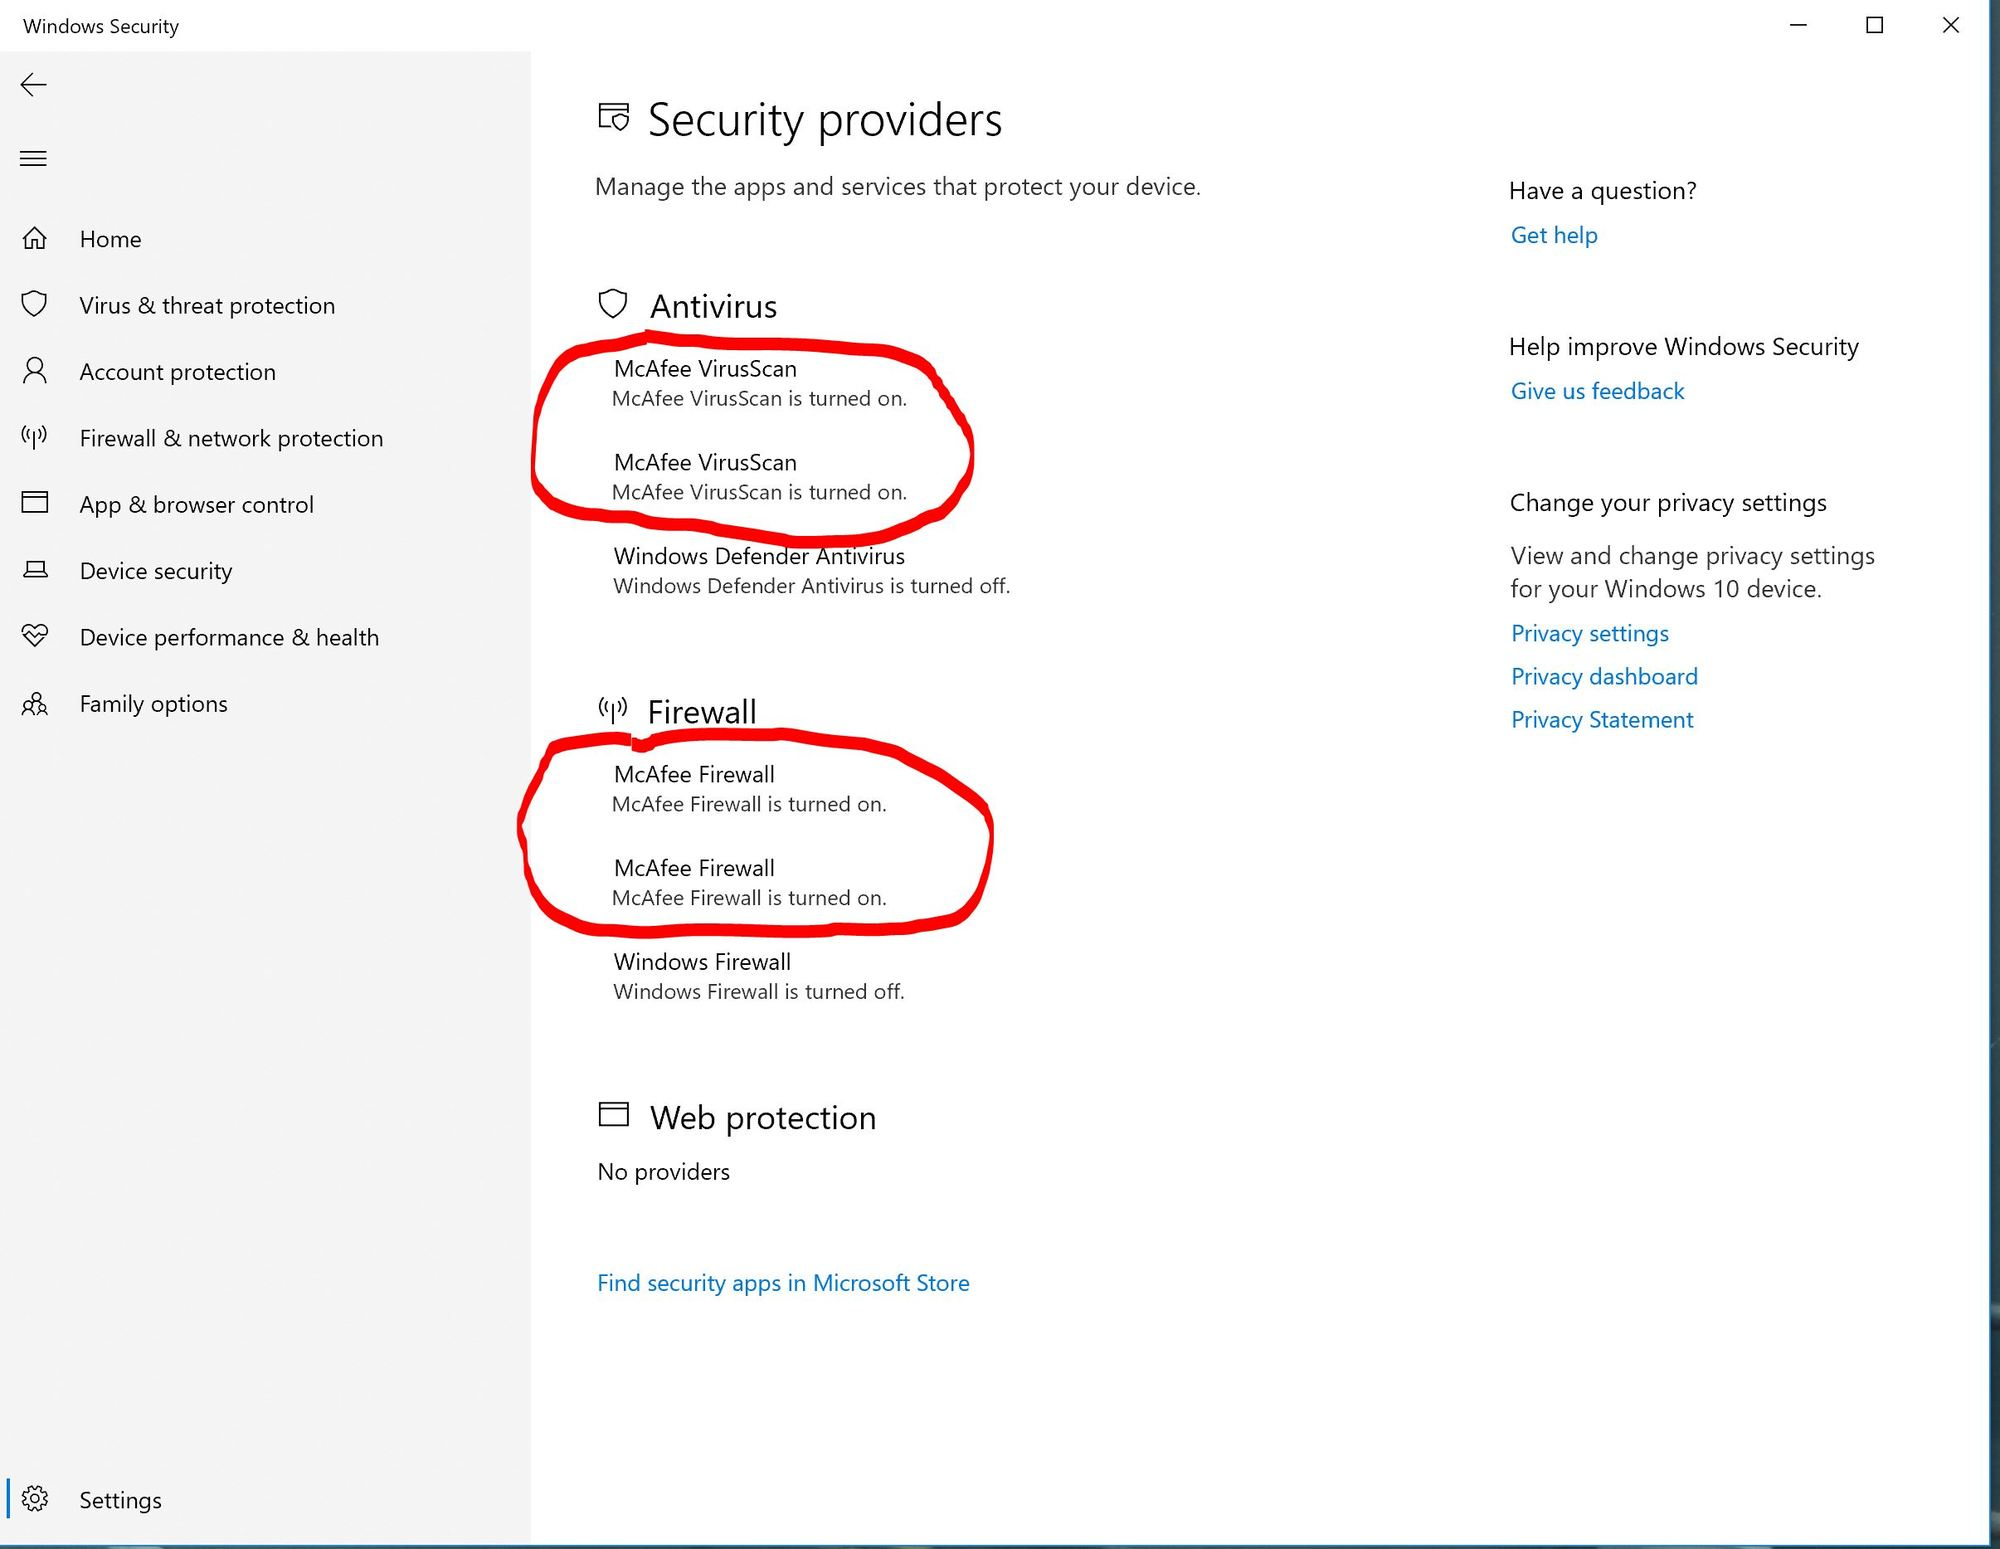 Windows Security - Showing TWO 2 Mcafee Apps in Settings Security since last Windows Update 5fb2d2fb-007d-496f-b04b-f5dc81266da2?upload=true.jpg